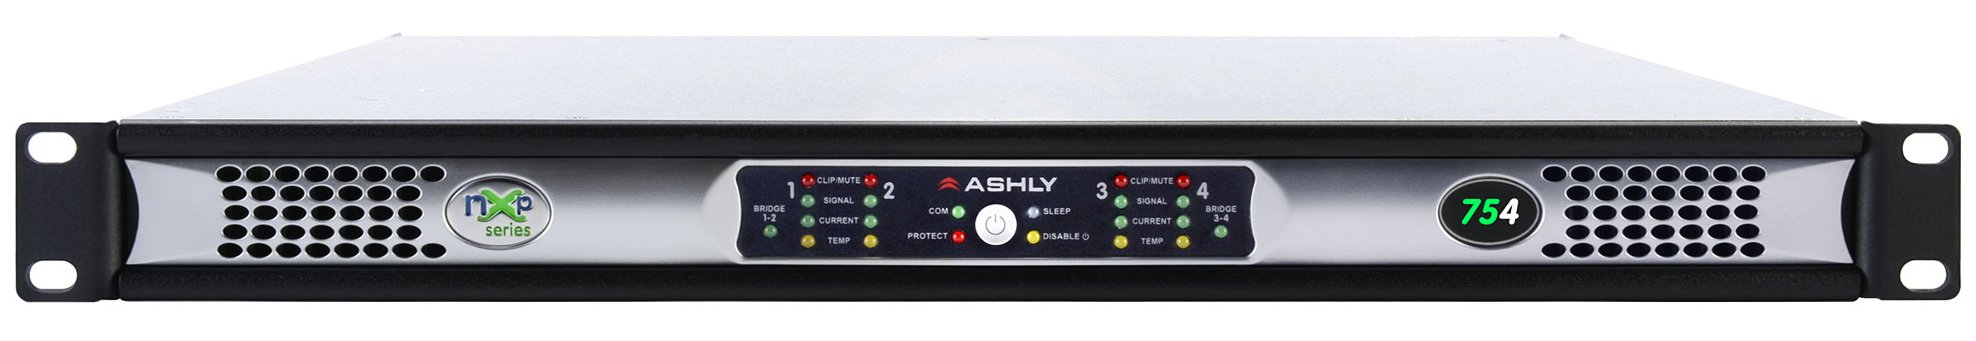 4 x 75 Watts @ 2 Ohms Network Power Amp with Protea DSP